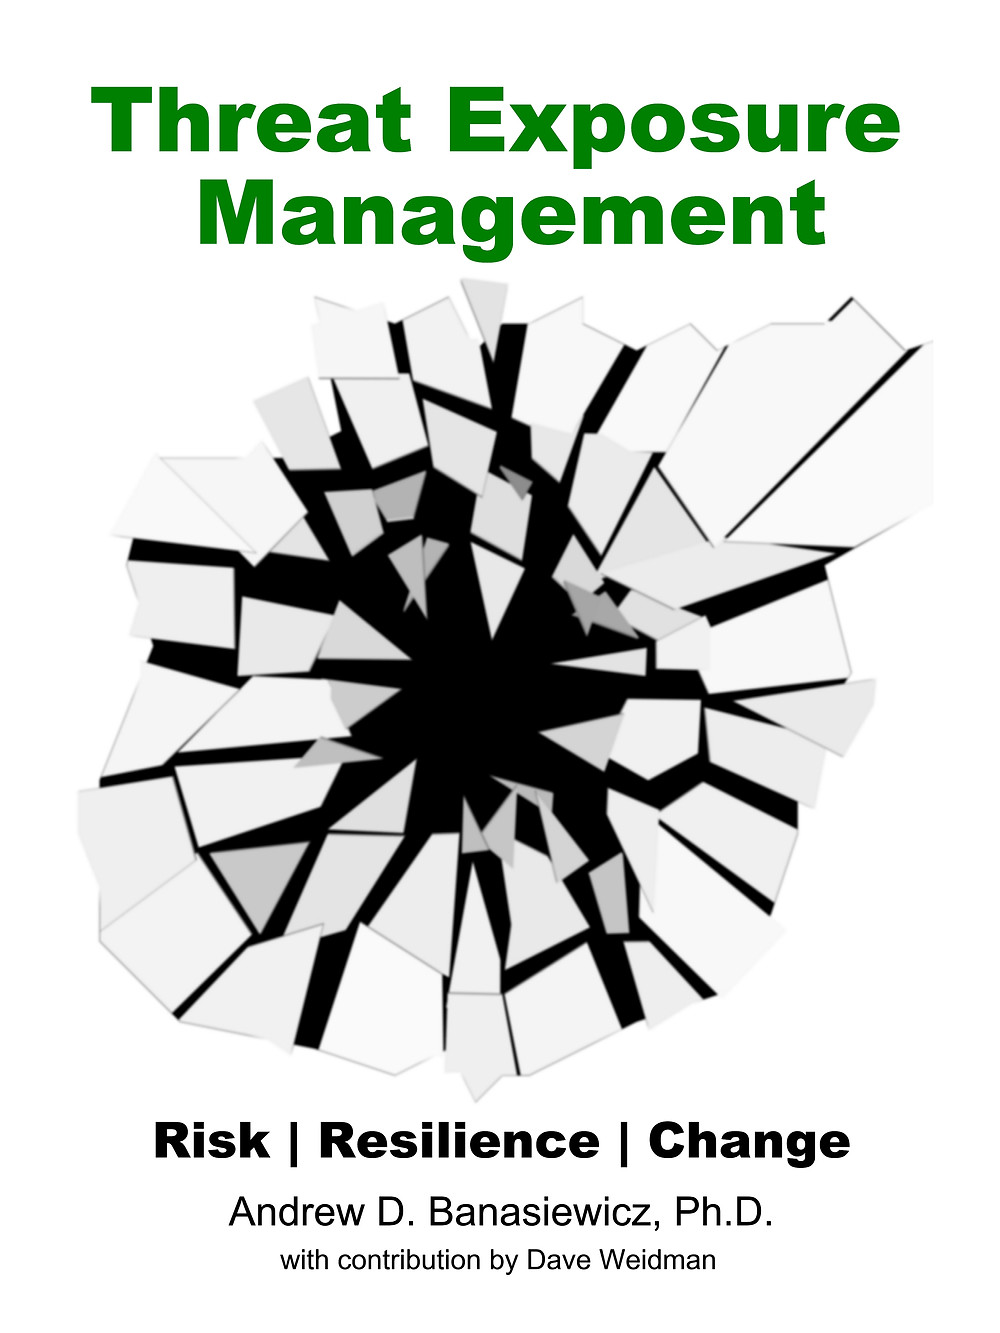 Threat Exposure Management Risk | Resilience | Change